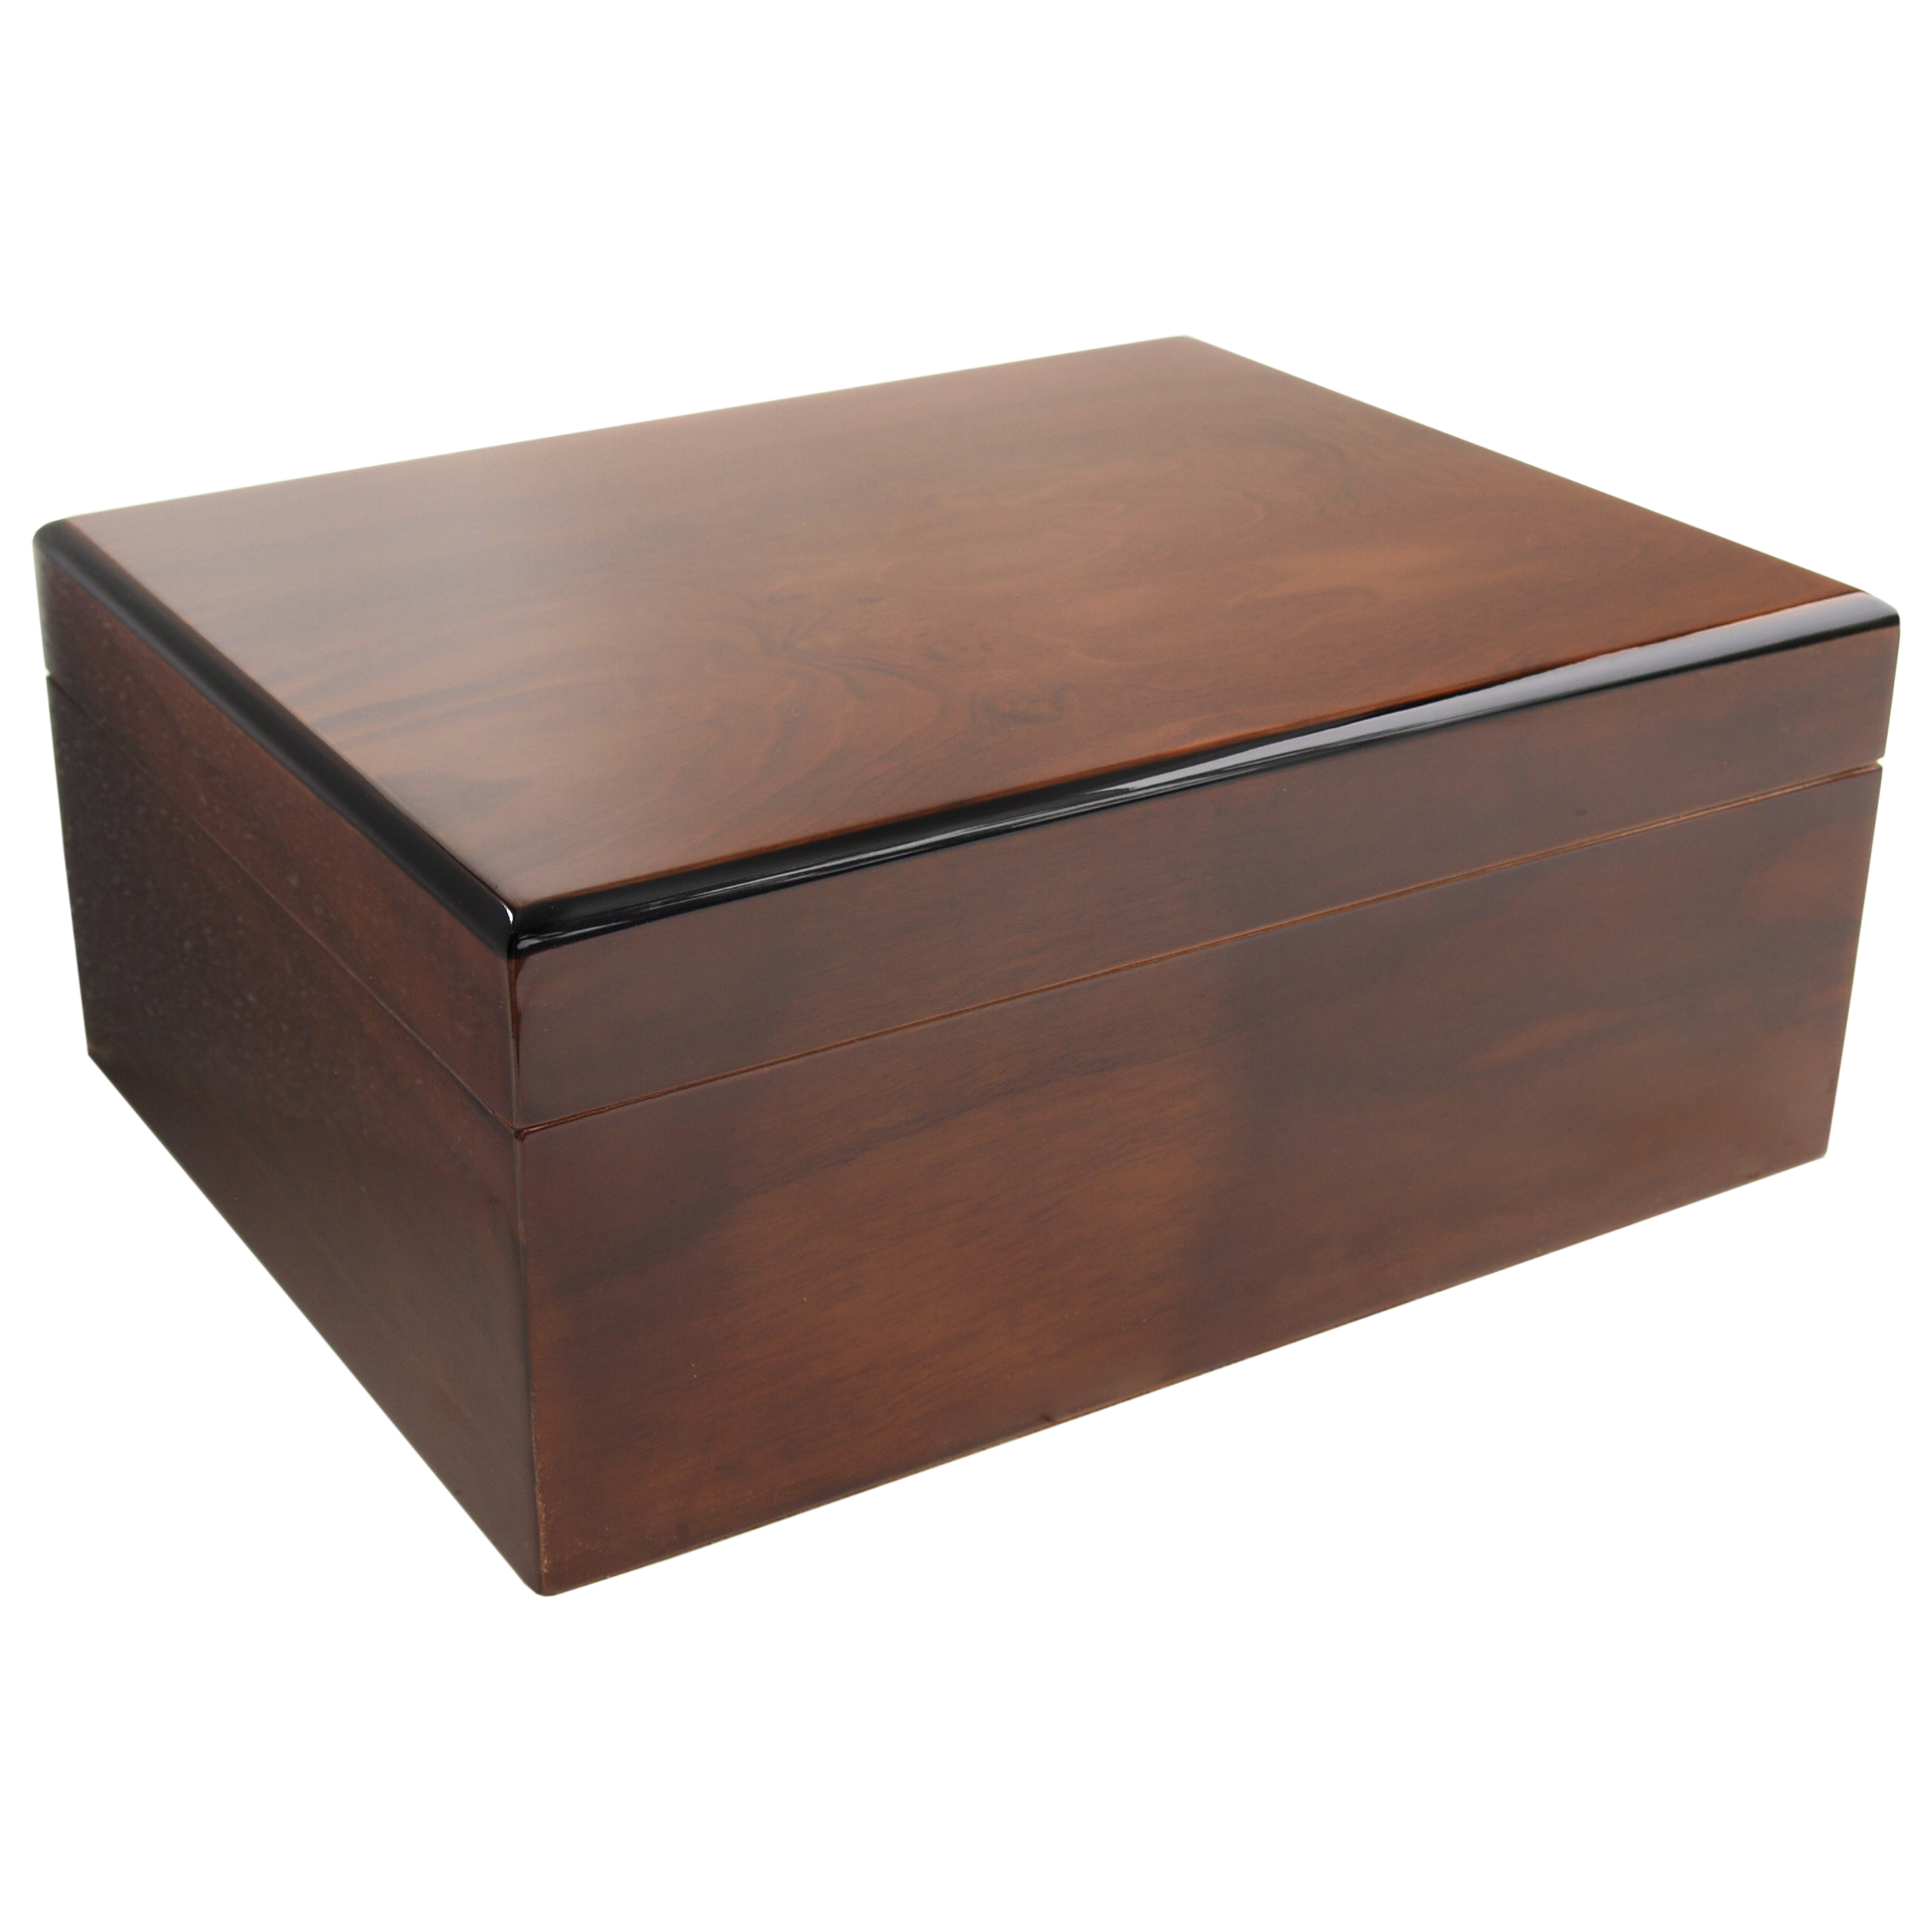 Savoy by Ashton Medium Humidor in Ash Burl, 50 Cigar Capacity